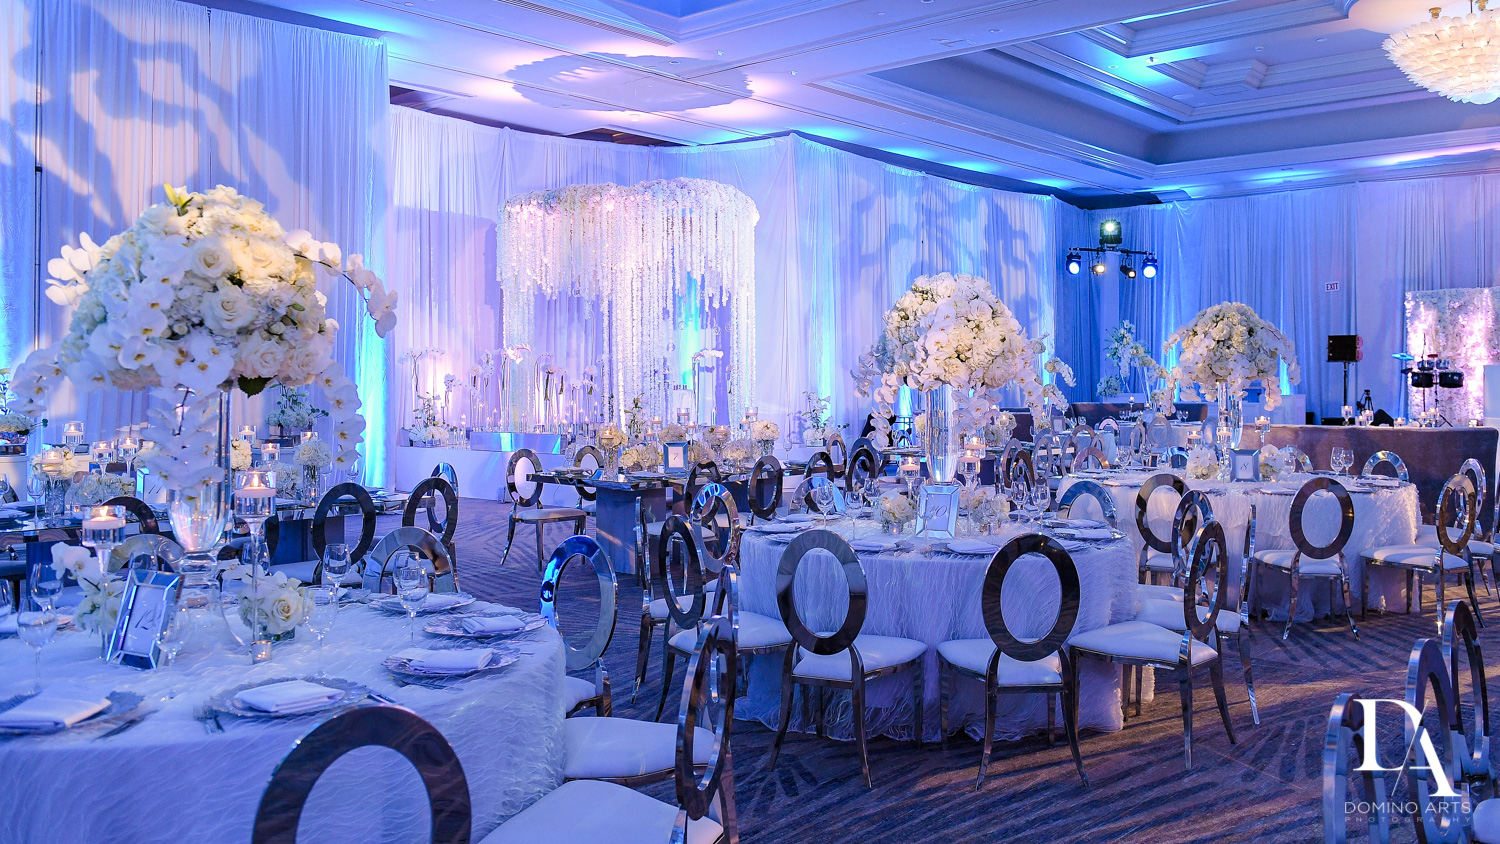 luxury wedding decor at Ultimate Events Wedding at Turnberry Isle Resort Miami by Domino Arts Photography